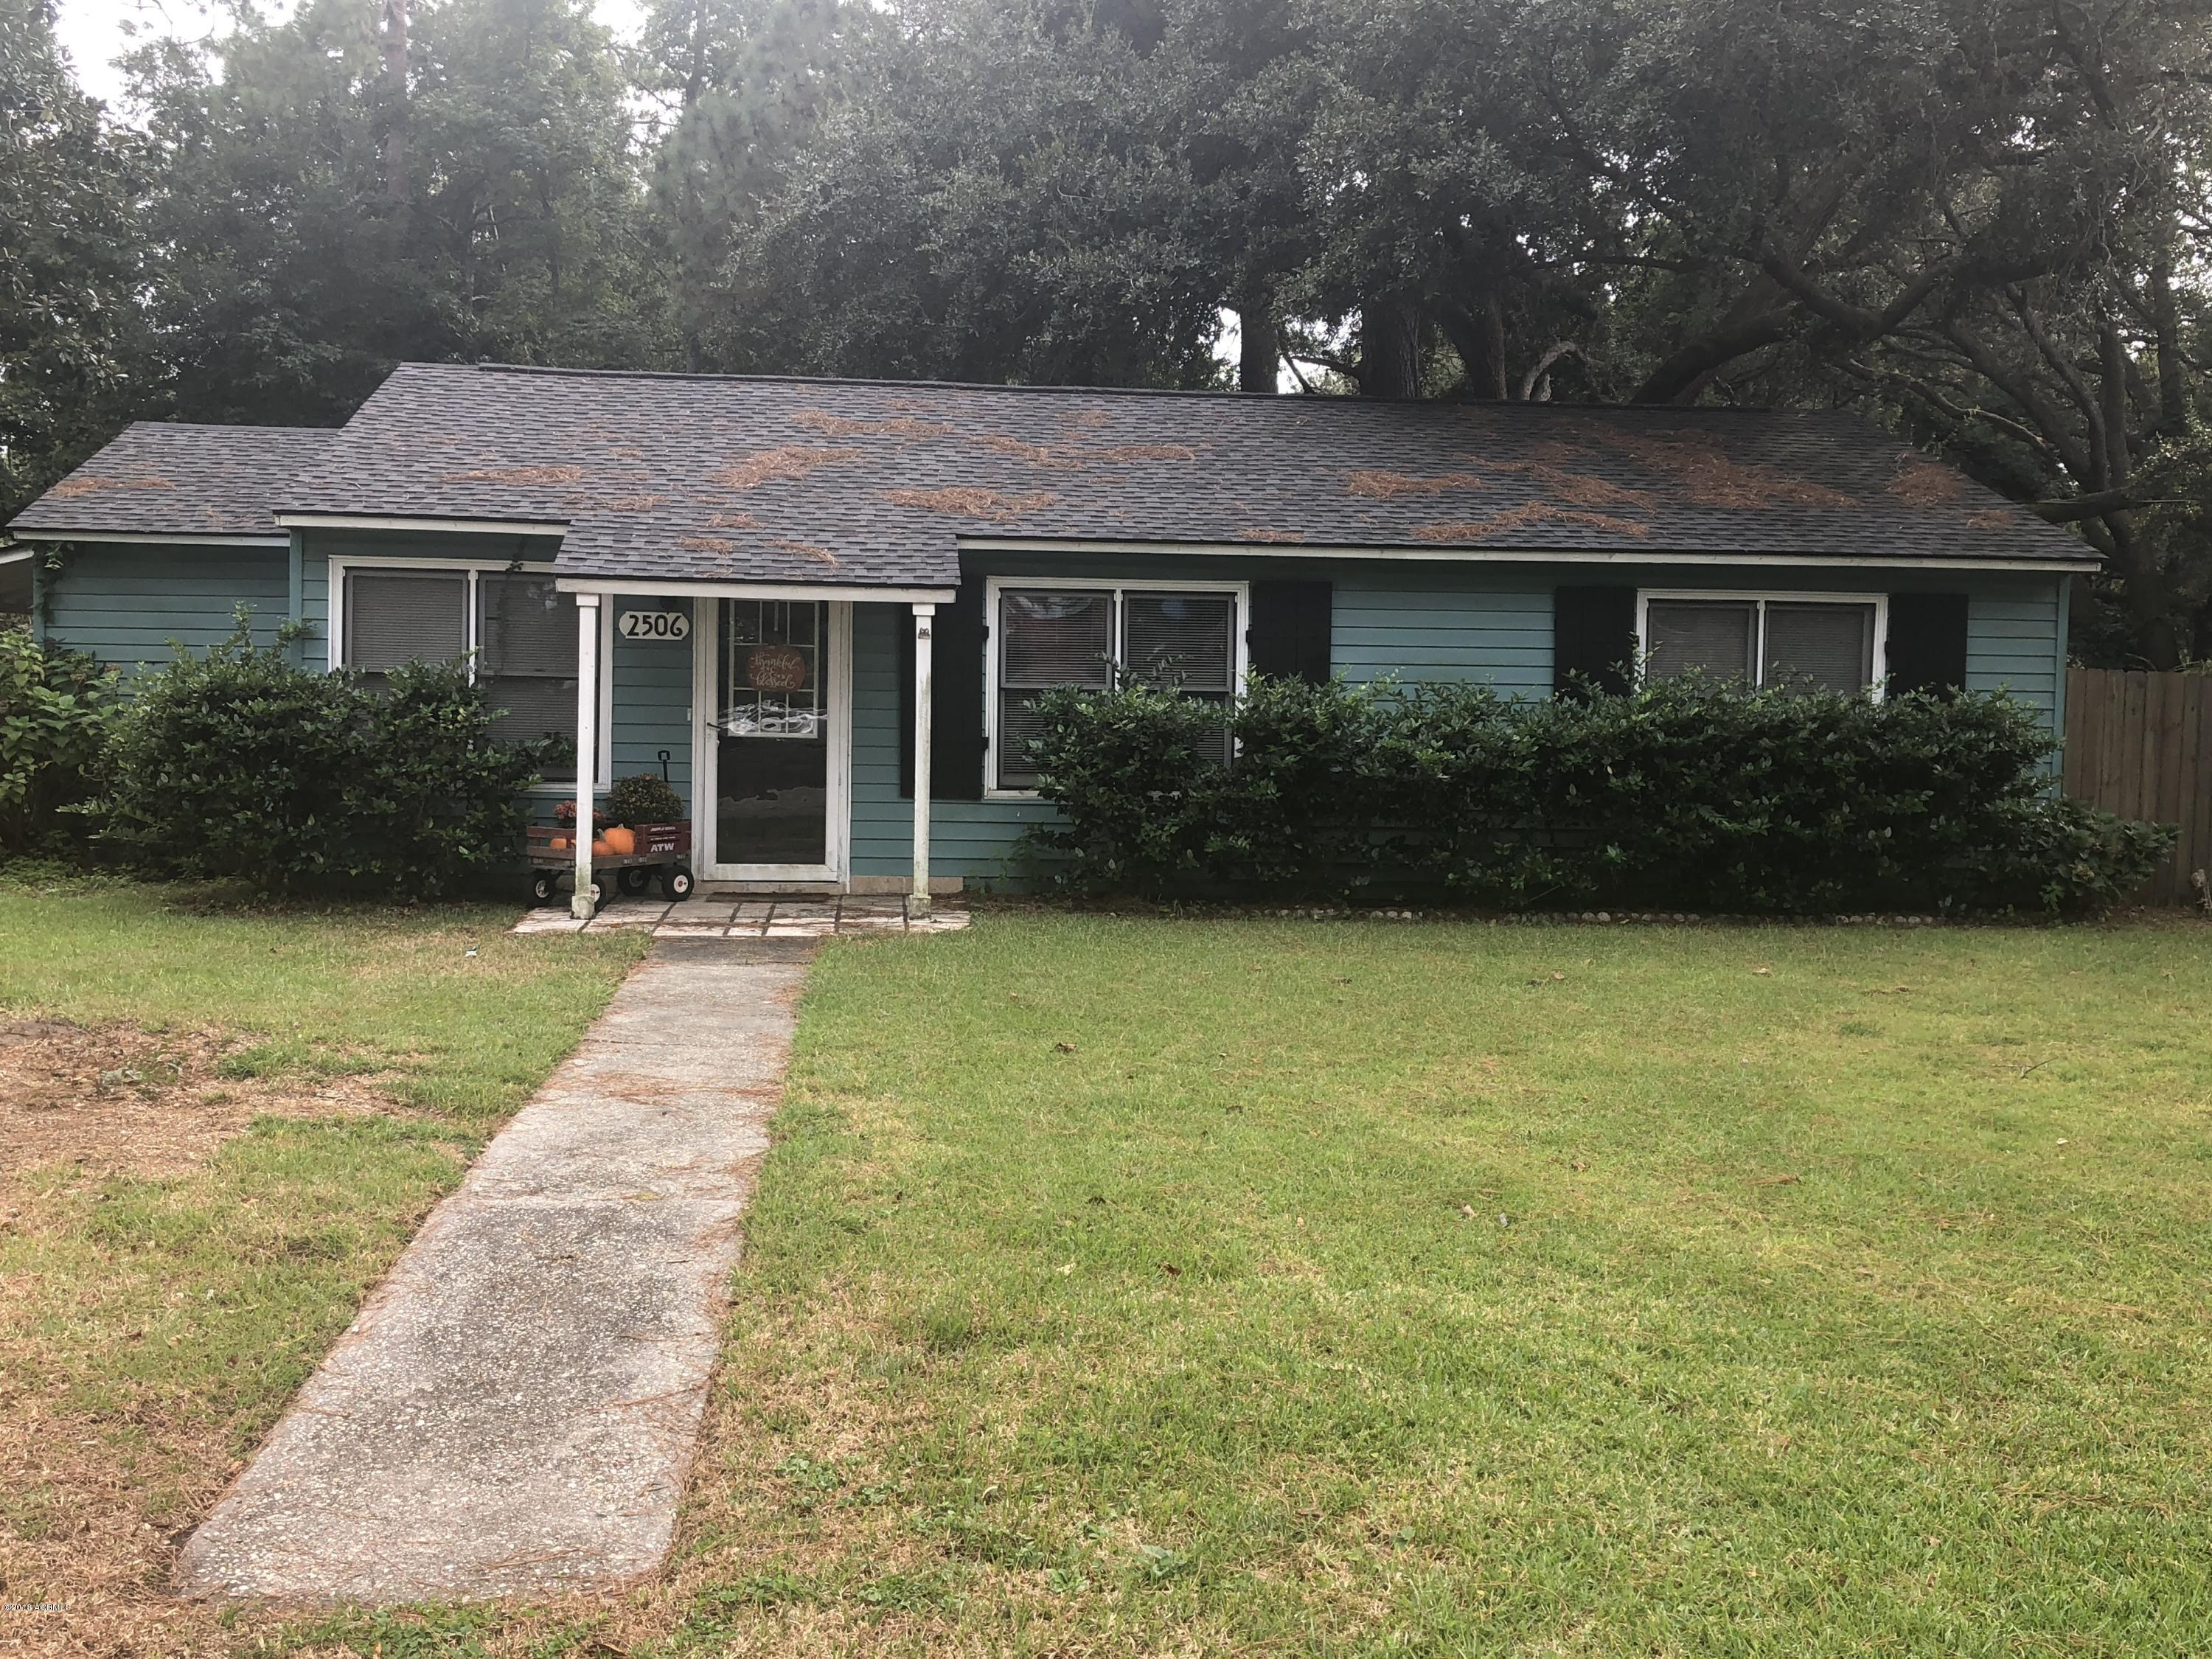 Photo of 2506 Duncan Drive, Beaufort, SC 29902